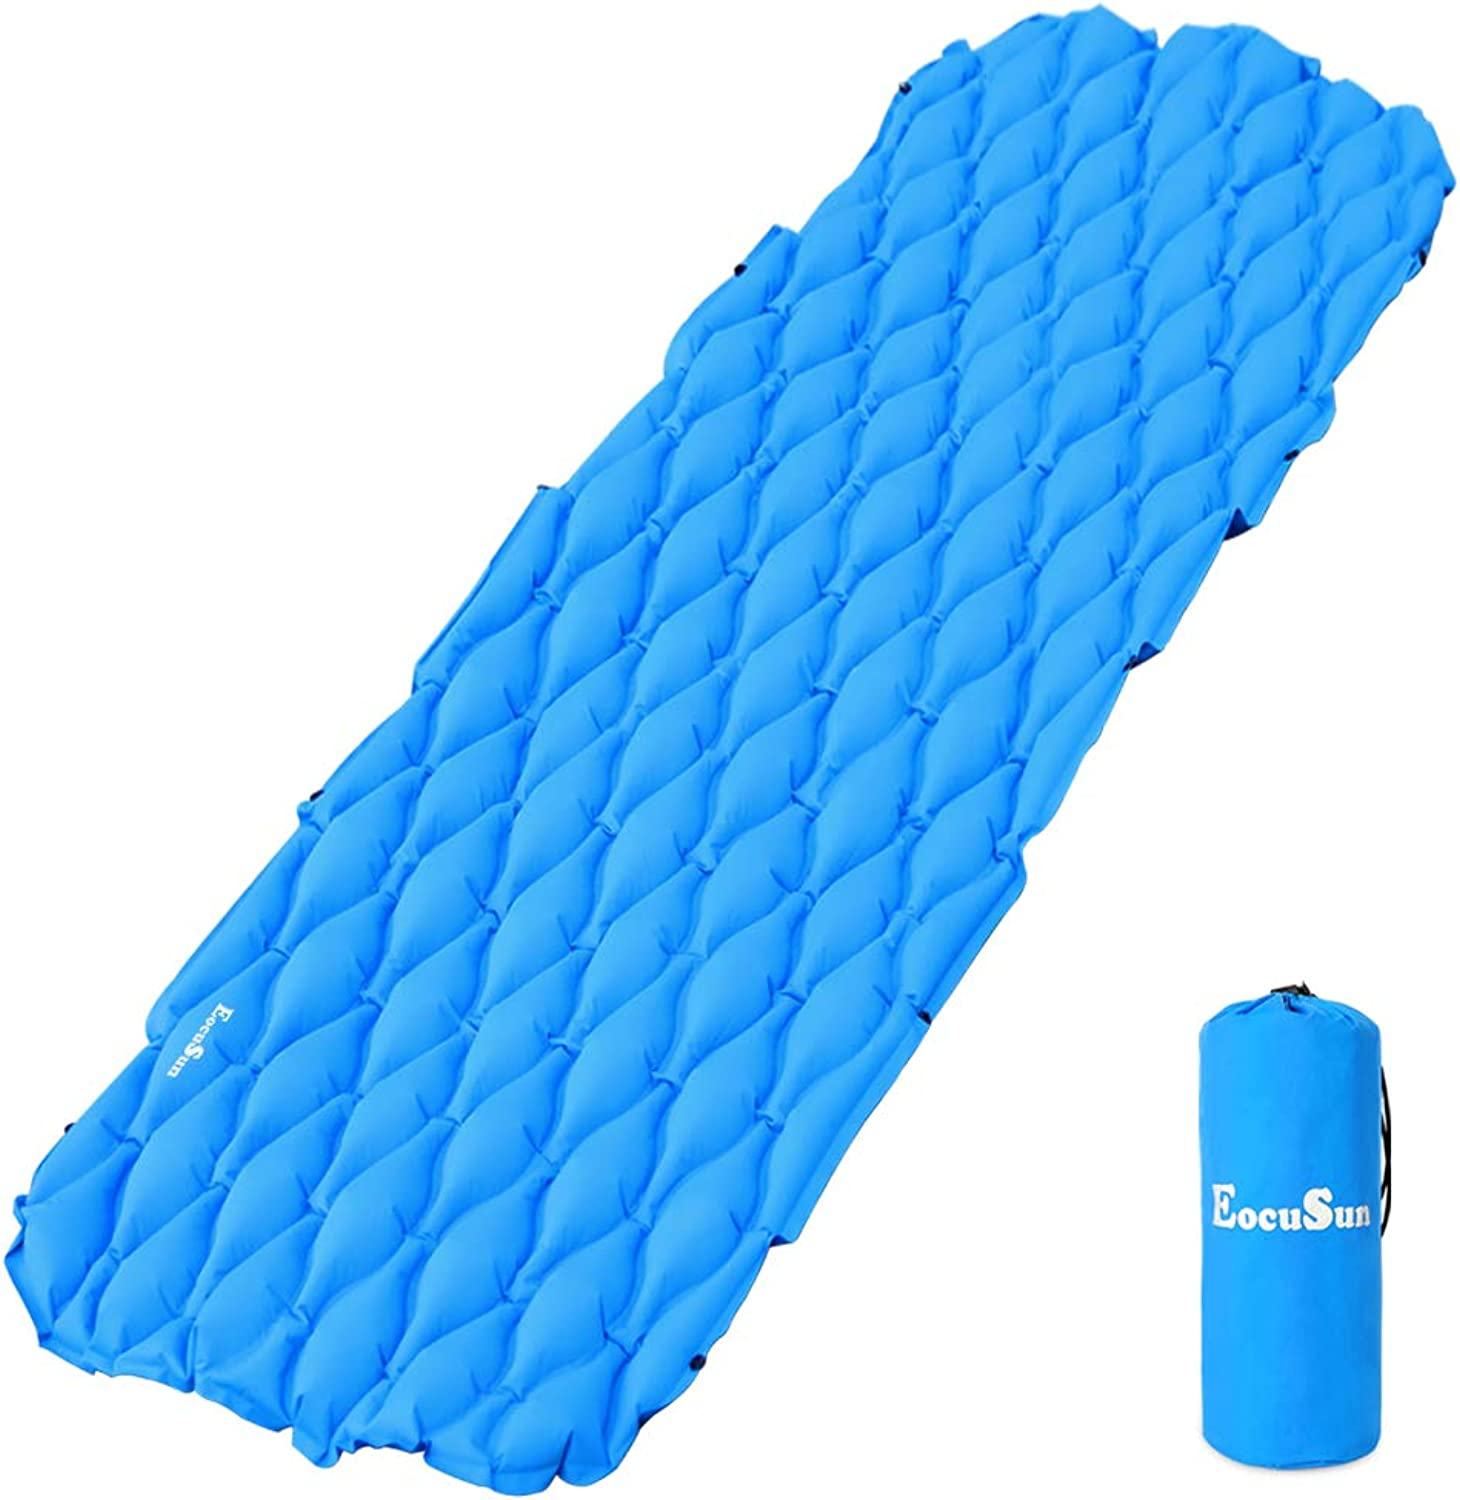 EocuSun Sleeping Pad InflatableLightweight Ultralight Compact Comfy Waterproof Air MattressCamping MaFor Camp,Backpacking,Hiking,Scouts,Travel